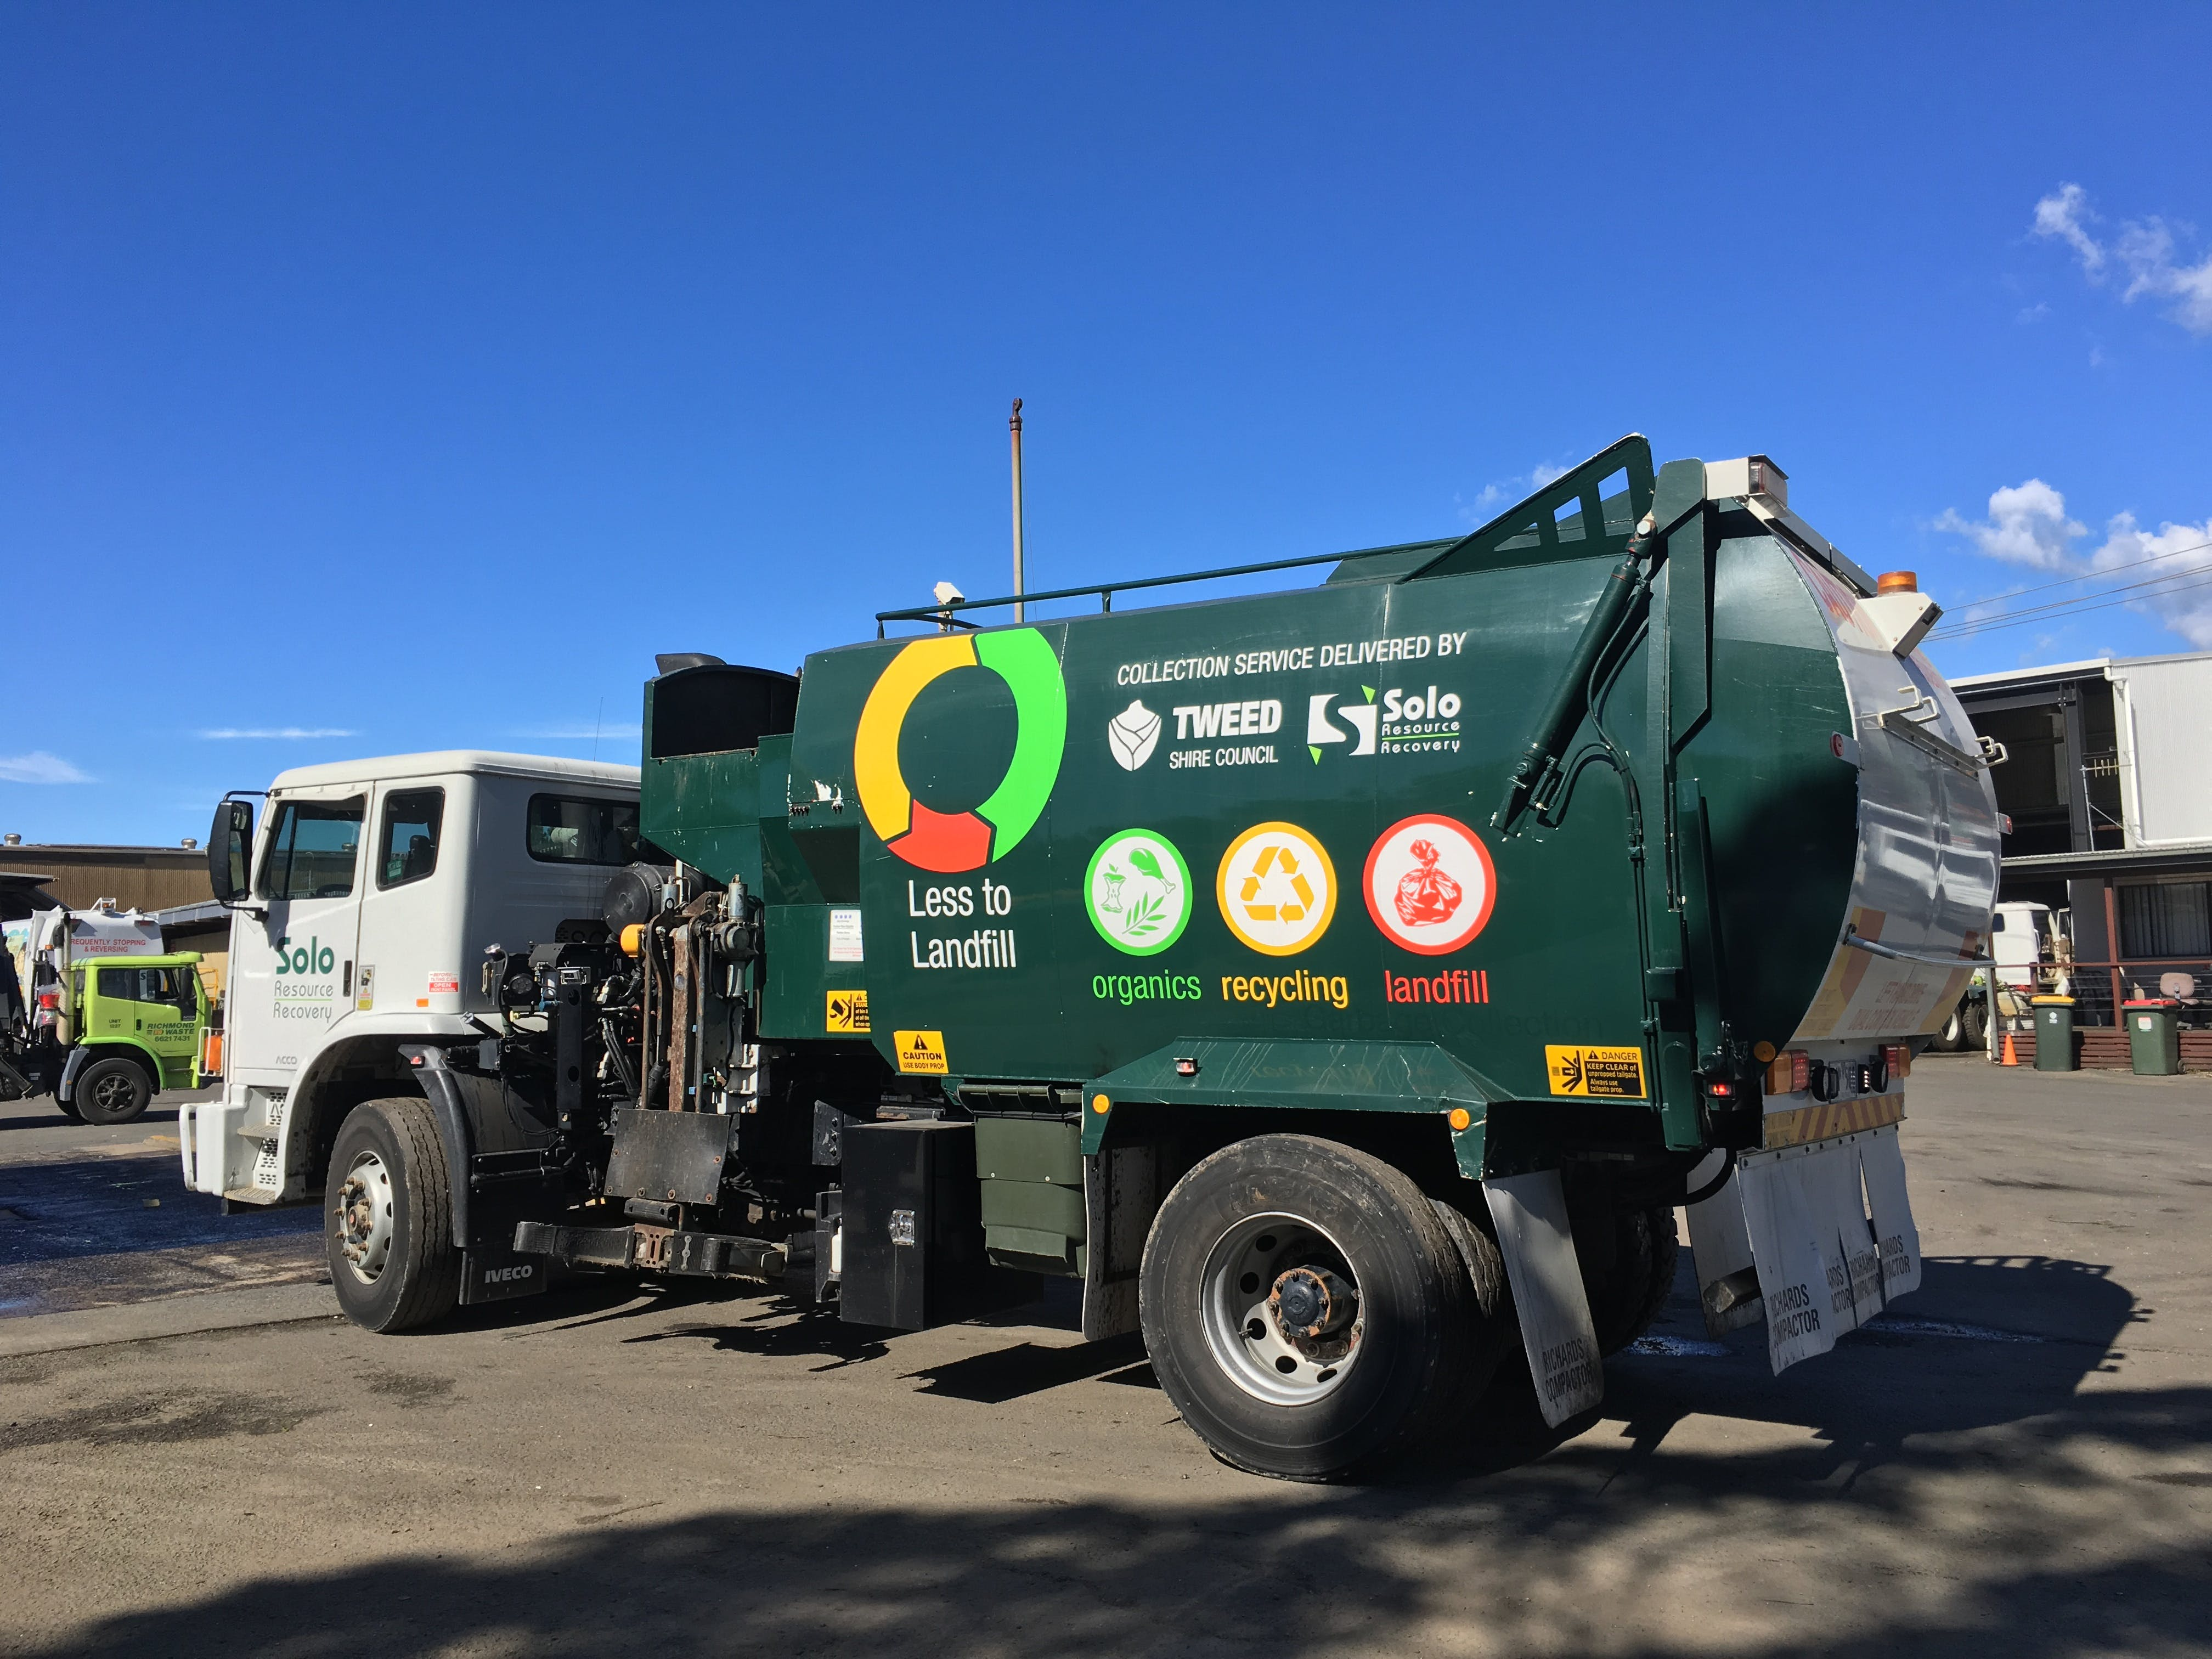 Community 'Less to Landfill' message on collection truck